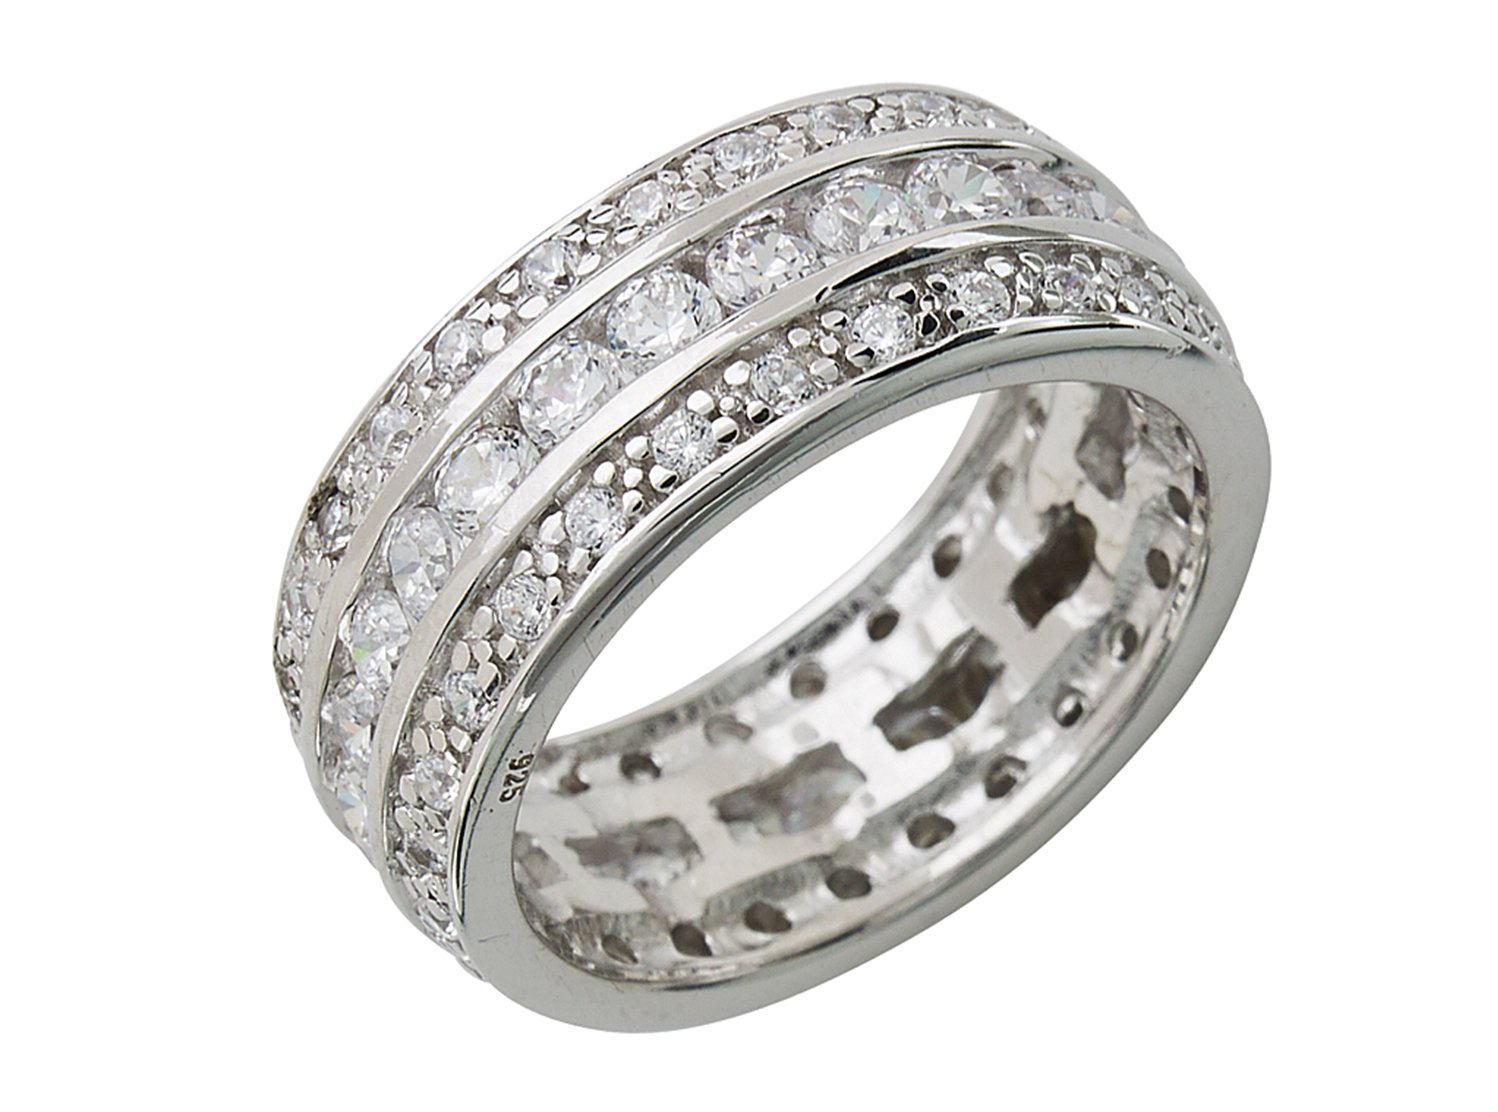 Eva's Wedding Band Ring - Triple Row CZs in Sterling Silver Size : 8